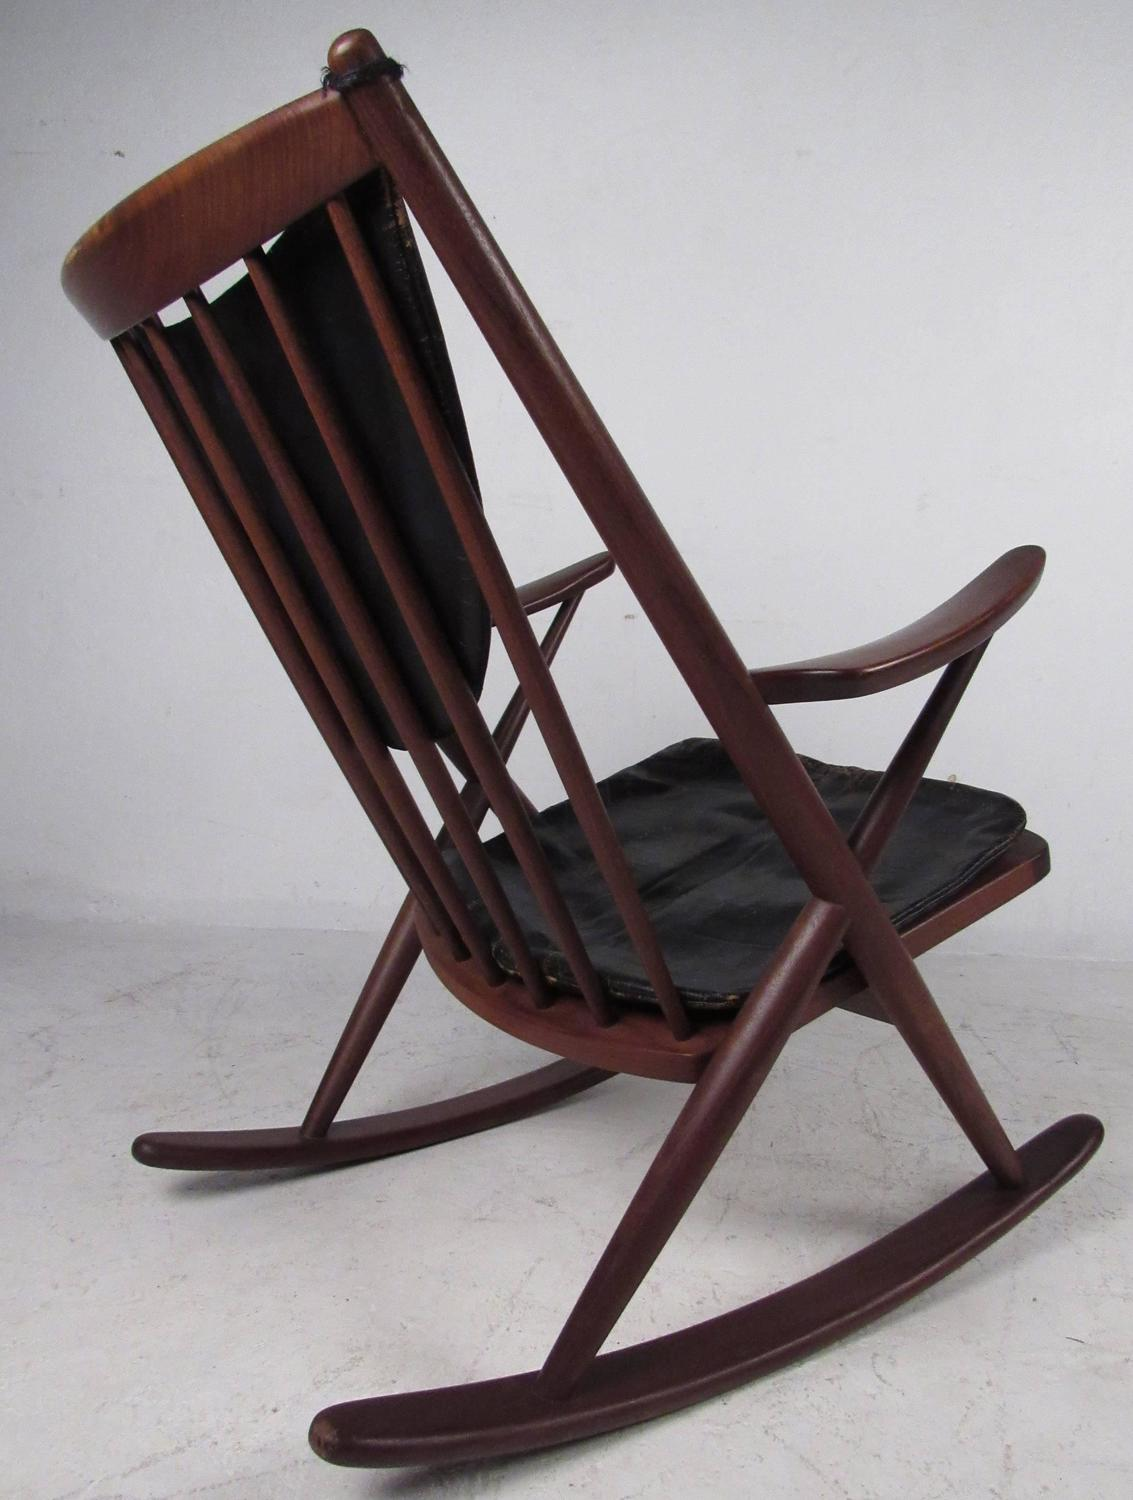 Midcentury Sculpted Rocking Chair For Sale at 1stdibs